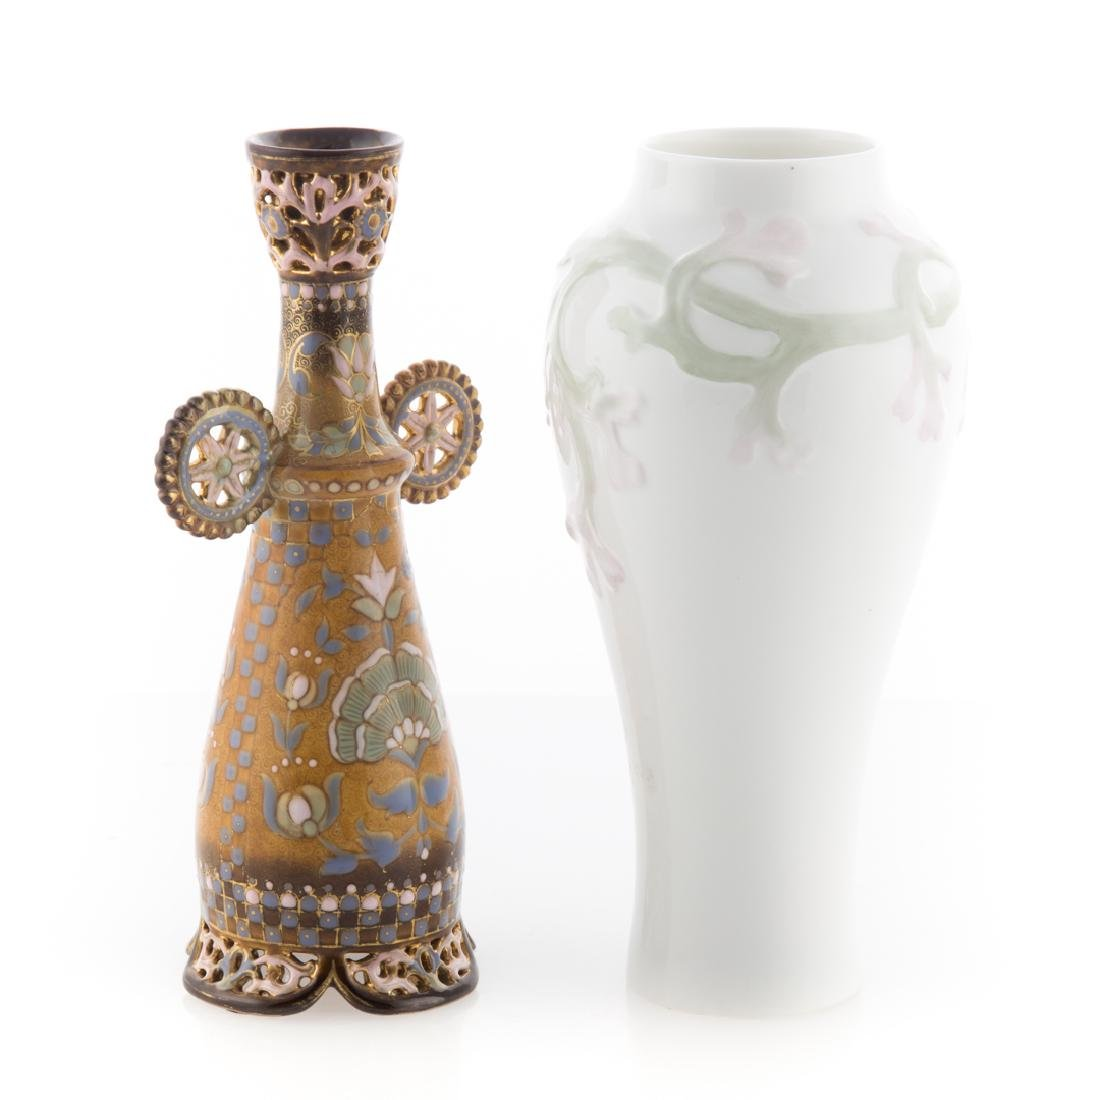 Zsolnay vase and Rorstrand porcelain vase - 3